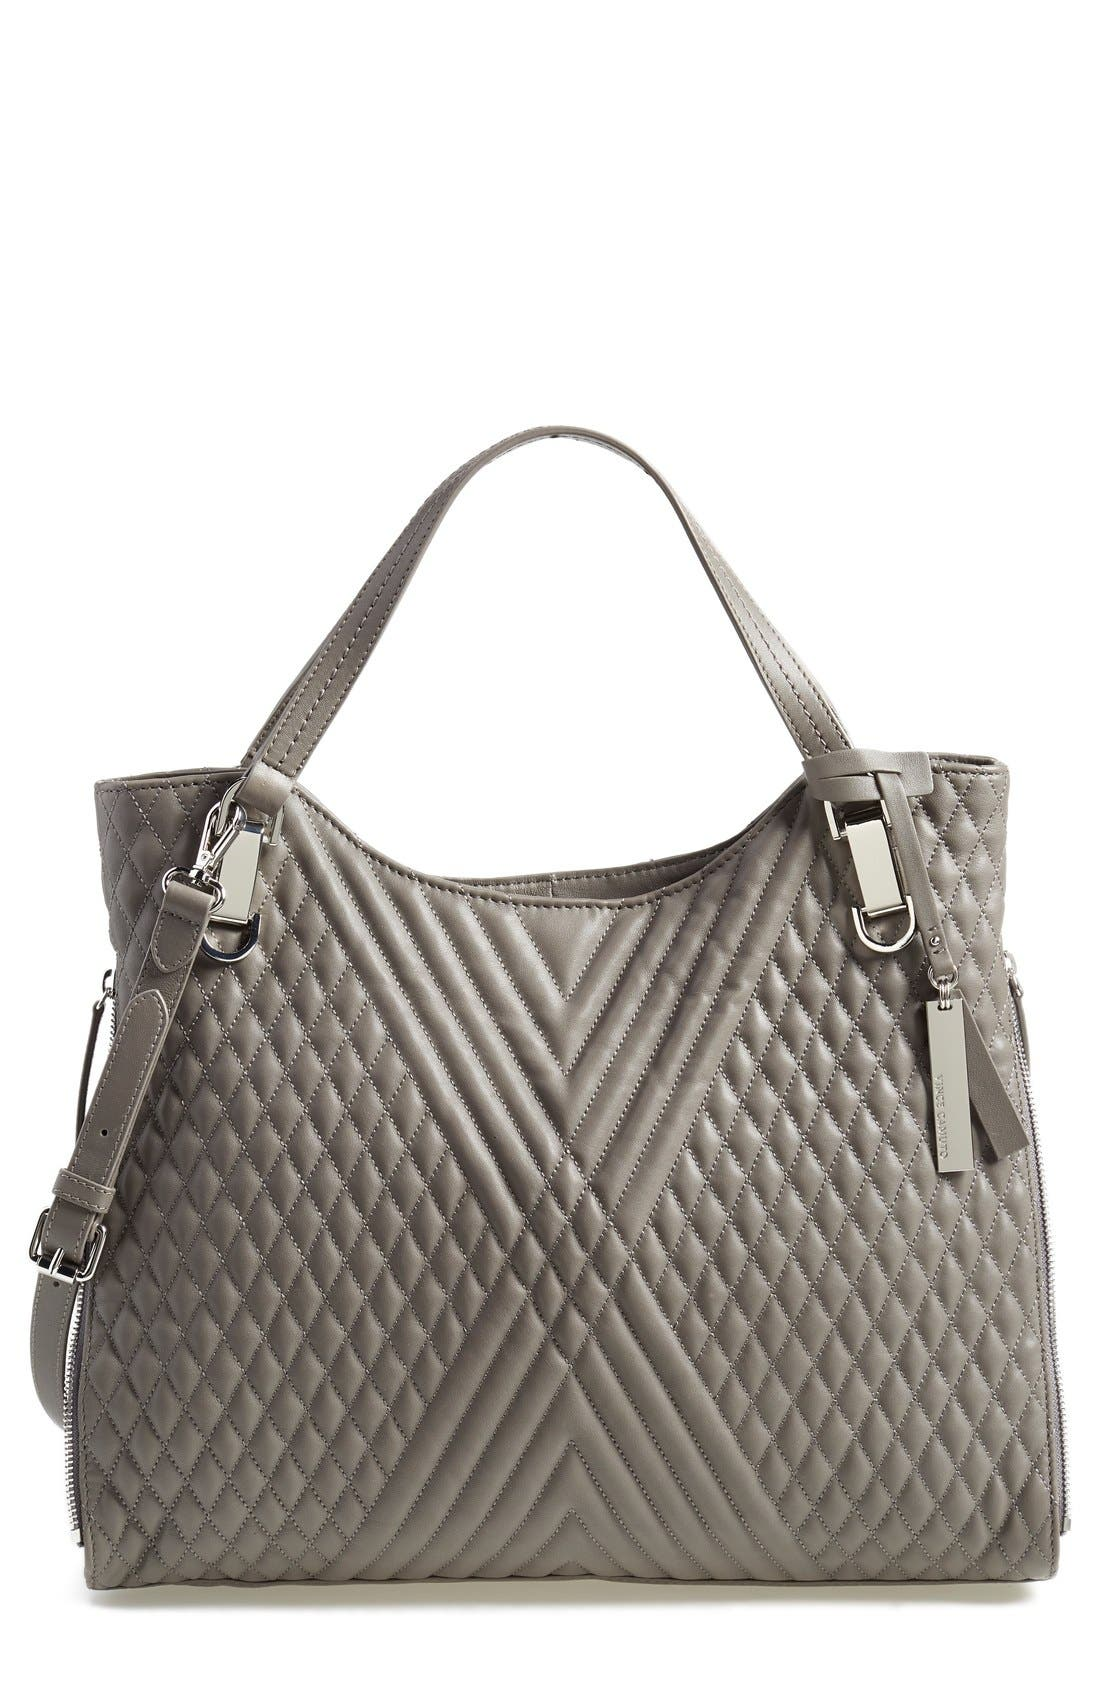 Alternate Image 1 Selected - Vince Camuto 'Riley' Quilted Leather Tote